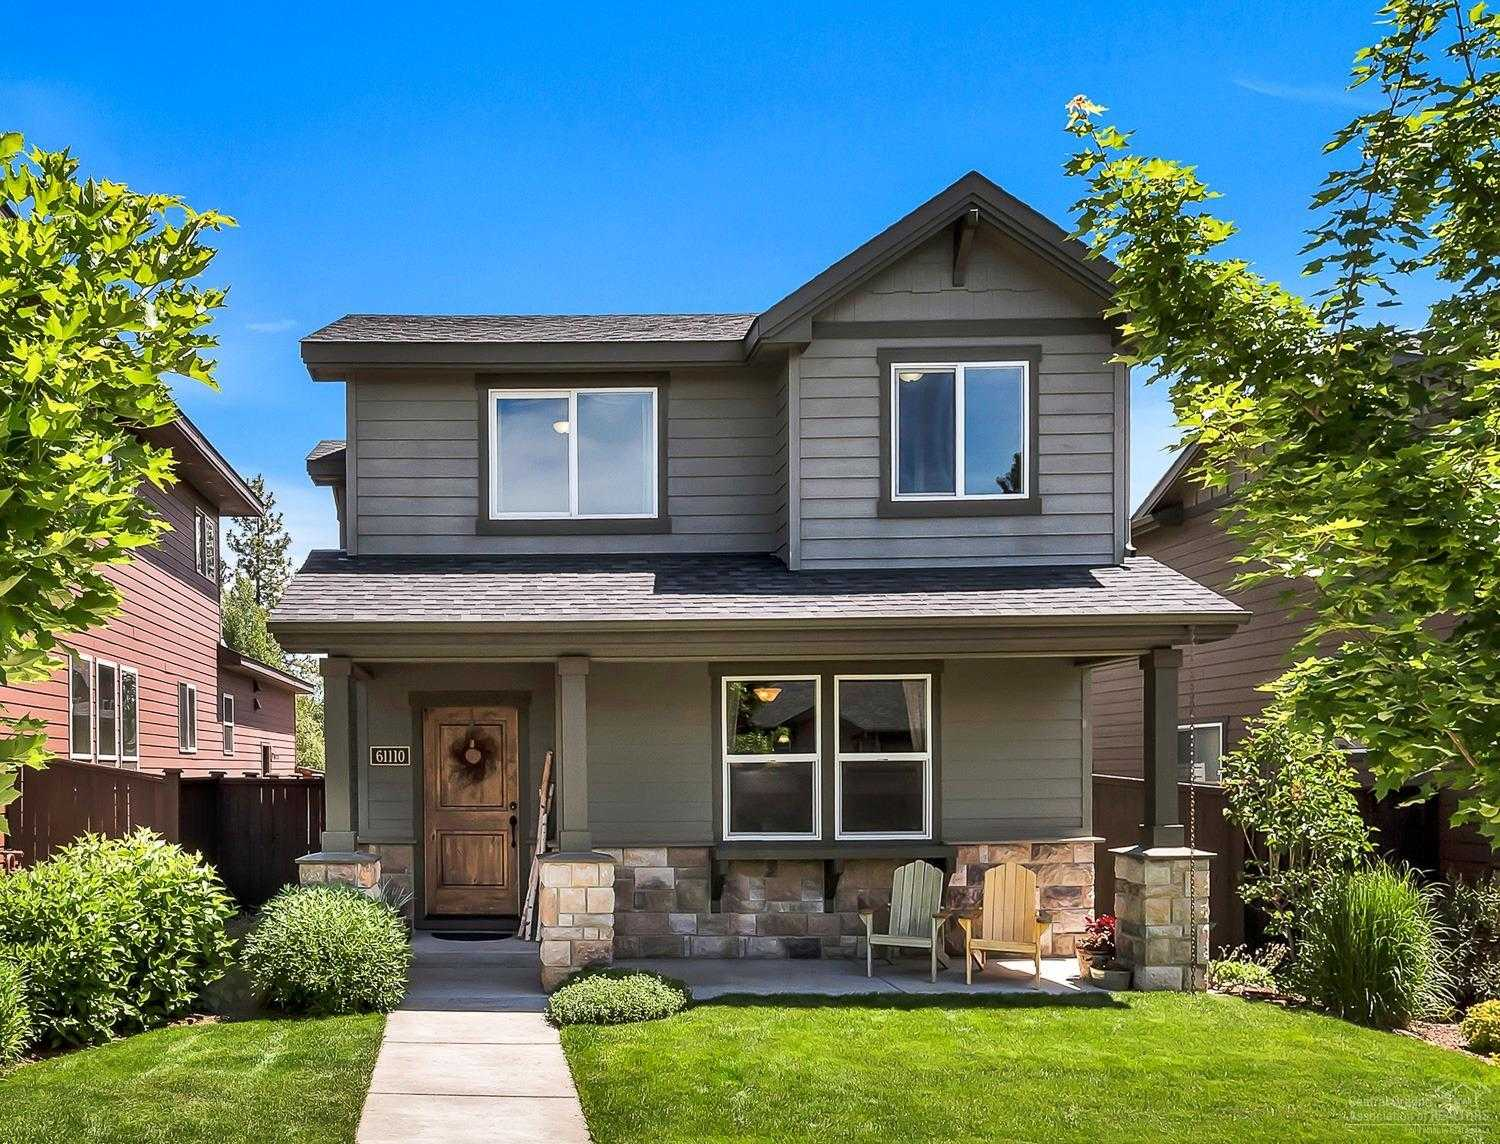 $399,000 - 3Br/3Ba -  for Sale in Bend